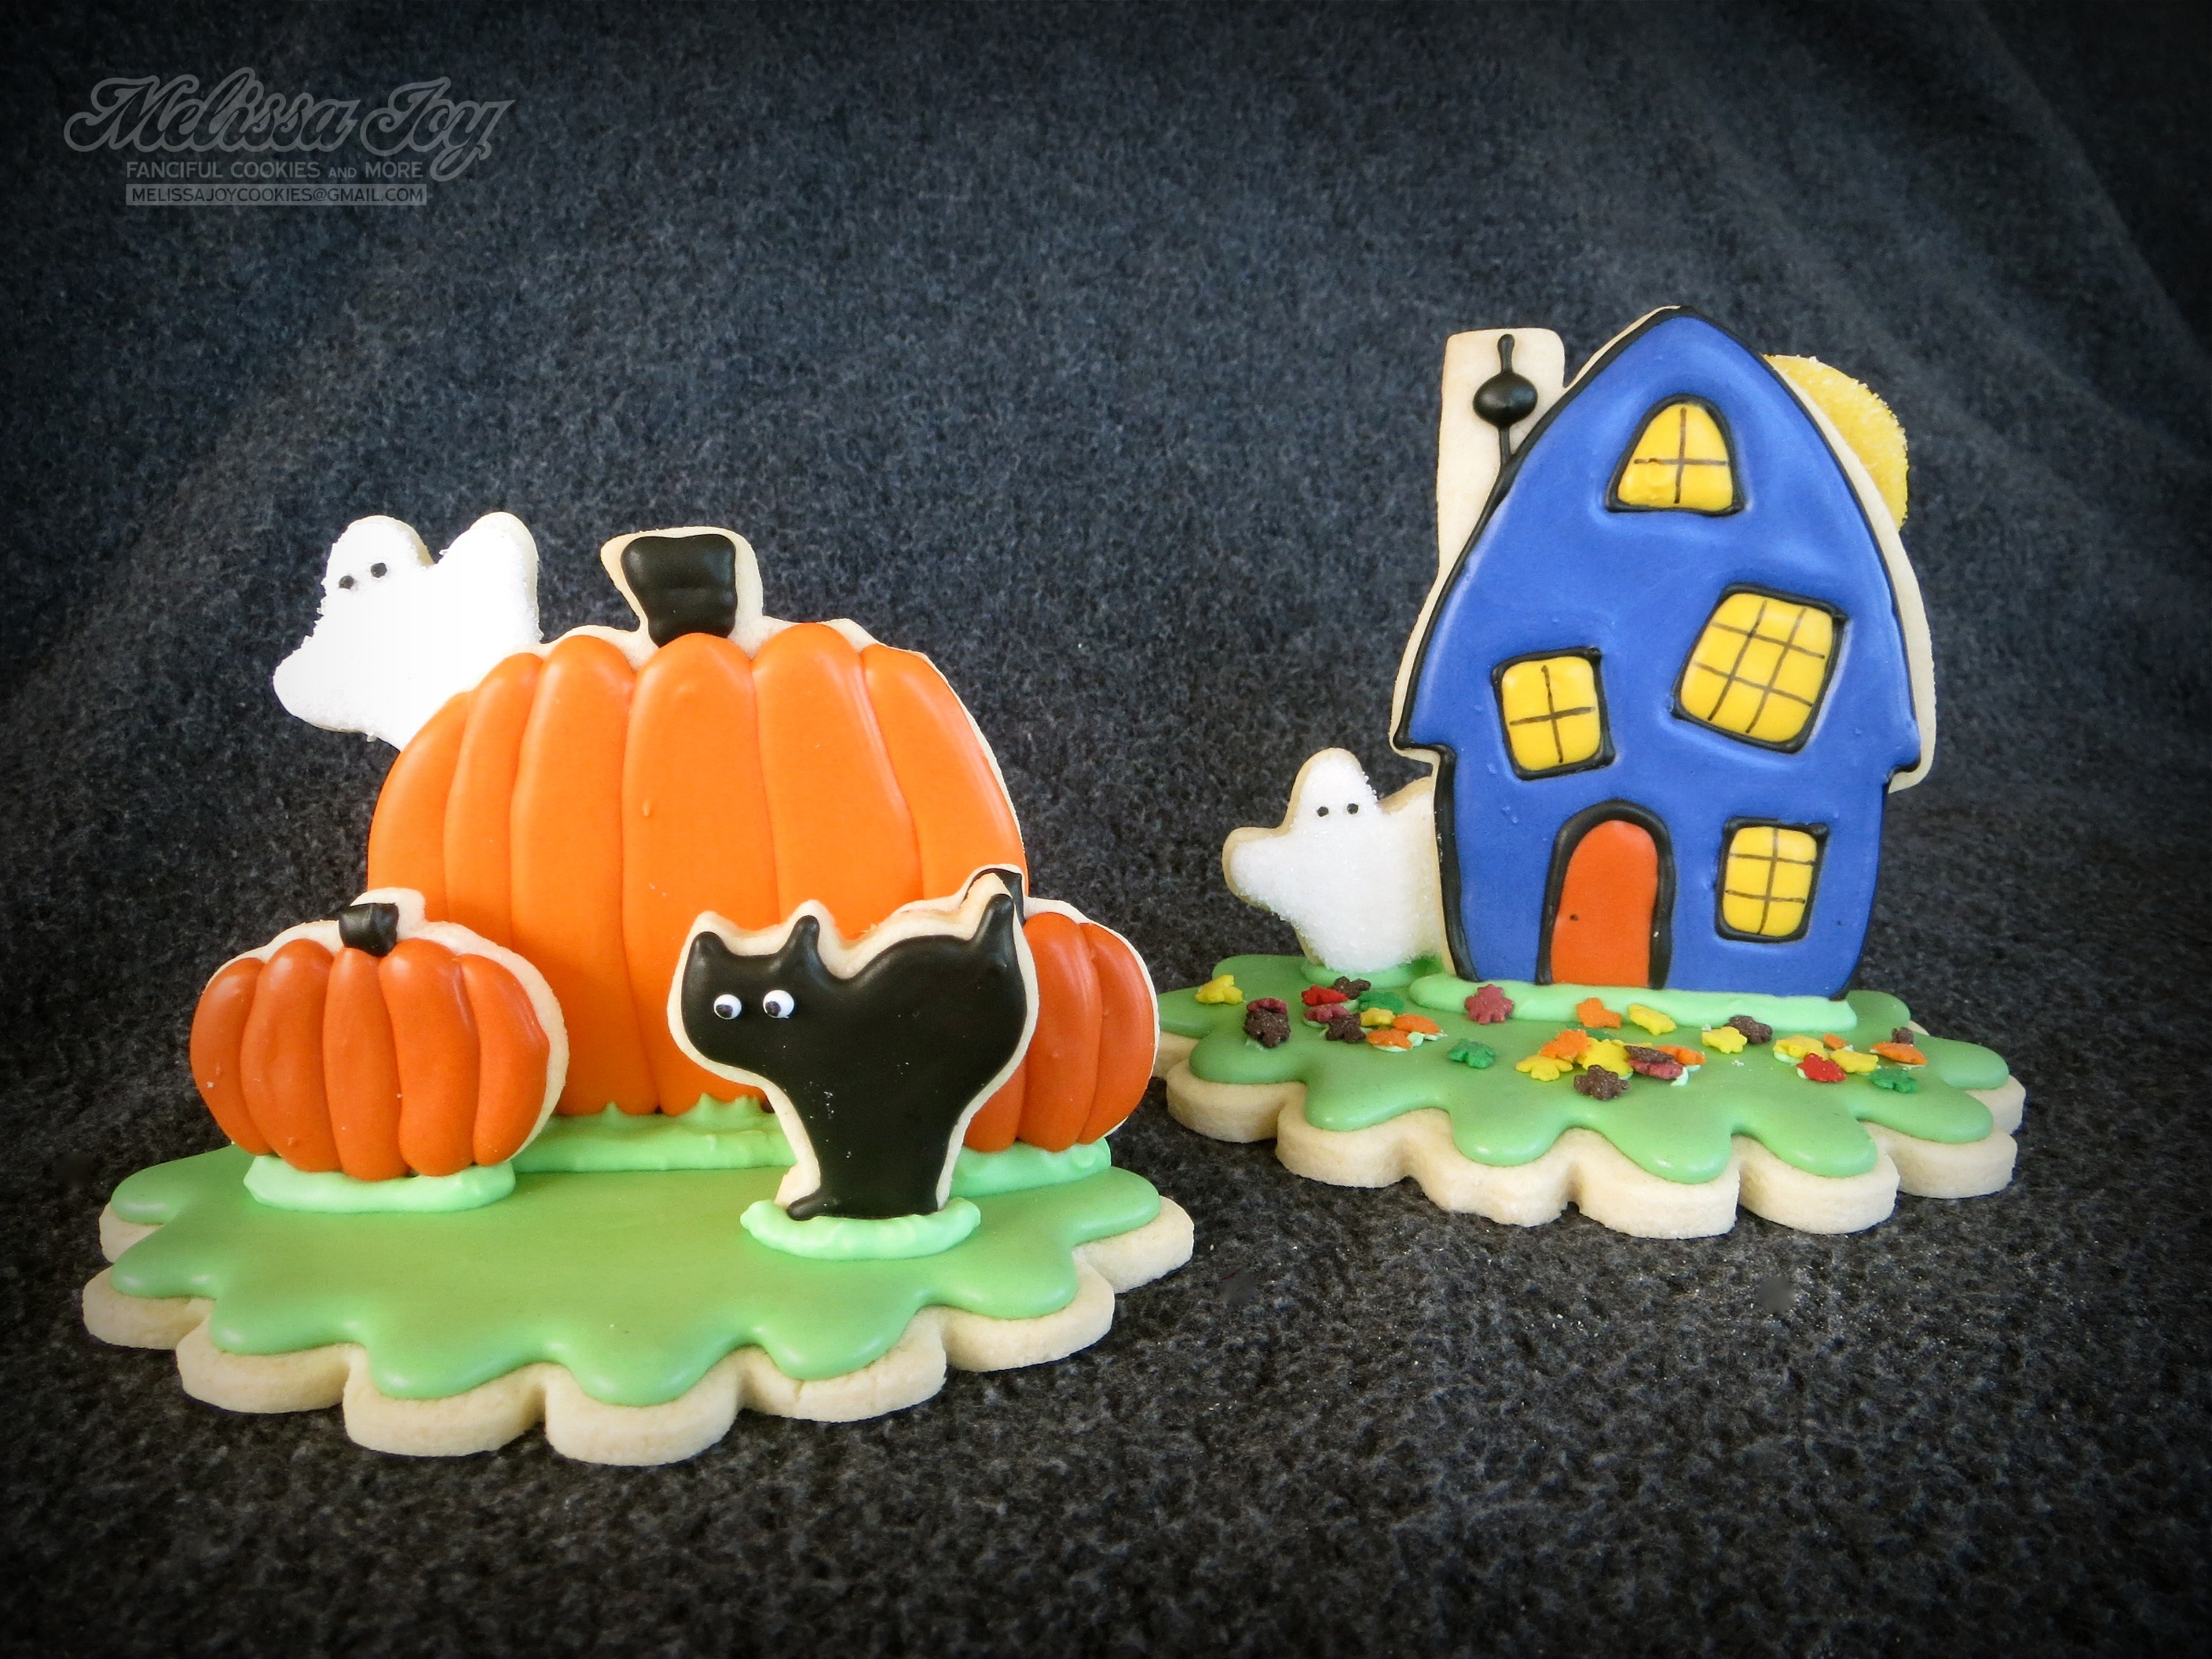 Halloween Themed Baby Shower Cookies.3d Halloween Cookie Craft For Kids Melissa Joy Cookies